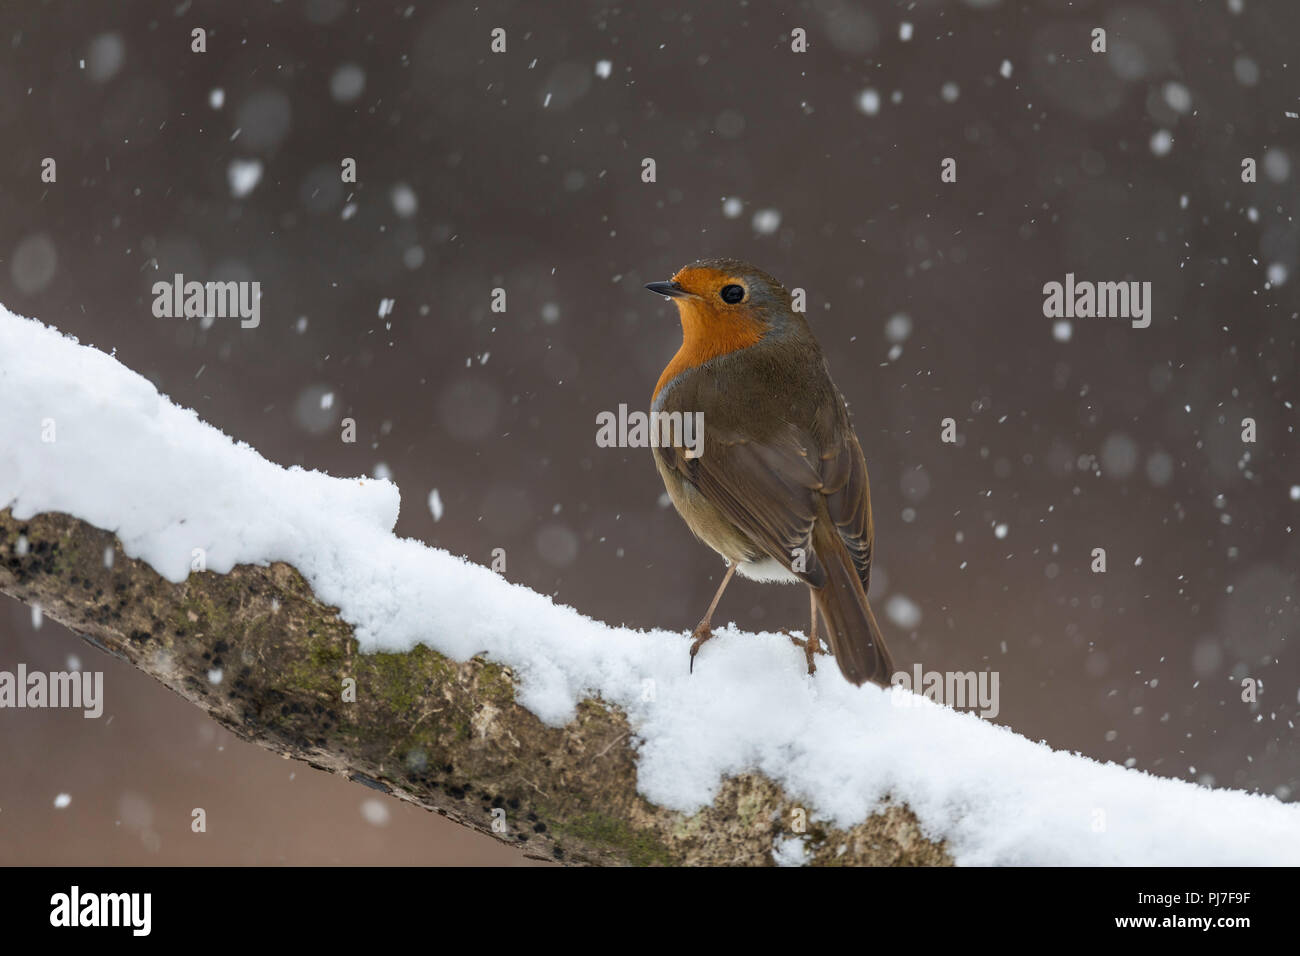 Robin; Erithacus rubecula Single in Snow Cornwall; UK - Stock Image